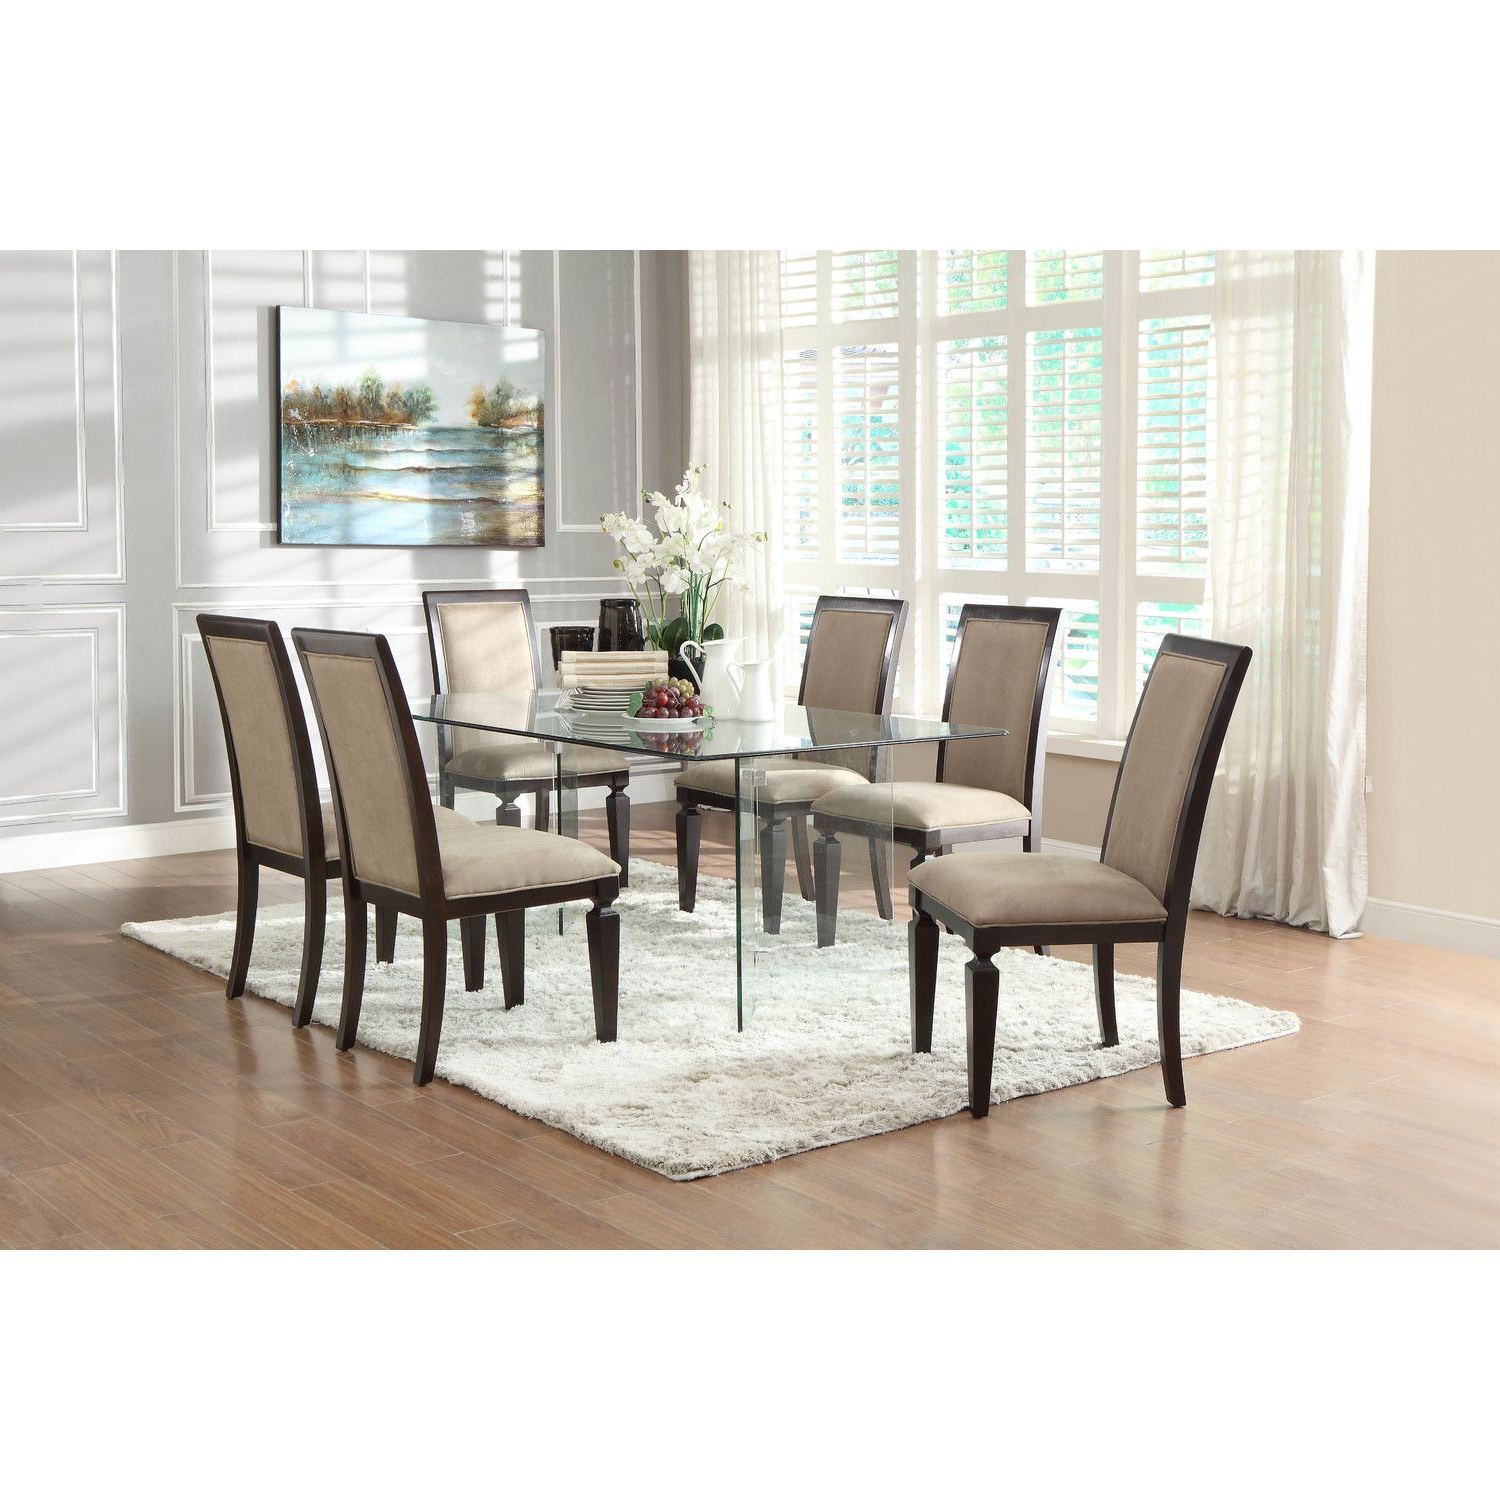 Dining With Latest Ephraim 5 Piece Dining Sets (Gallery 16 of 25)